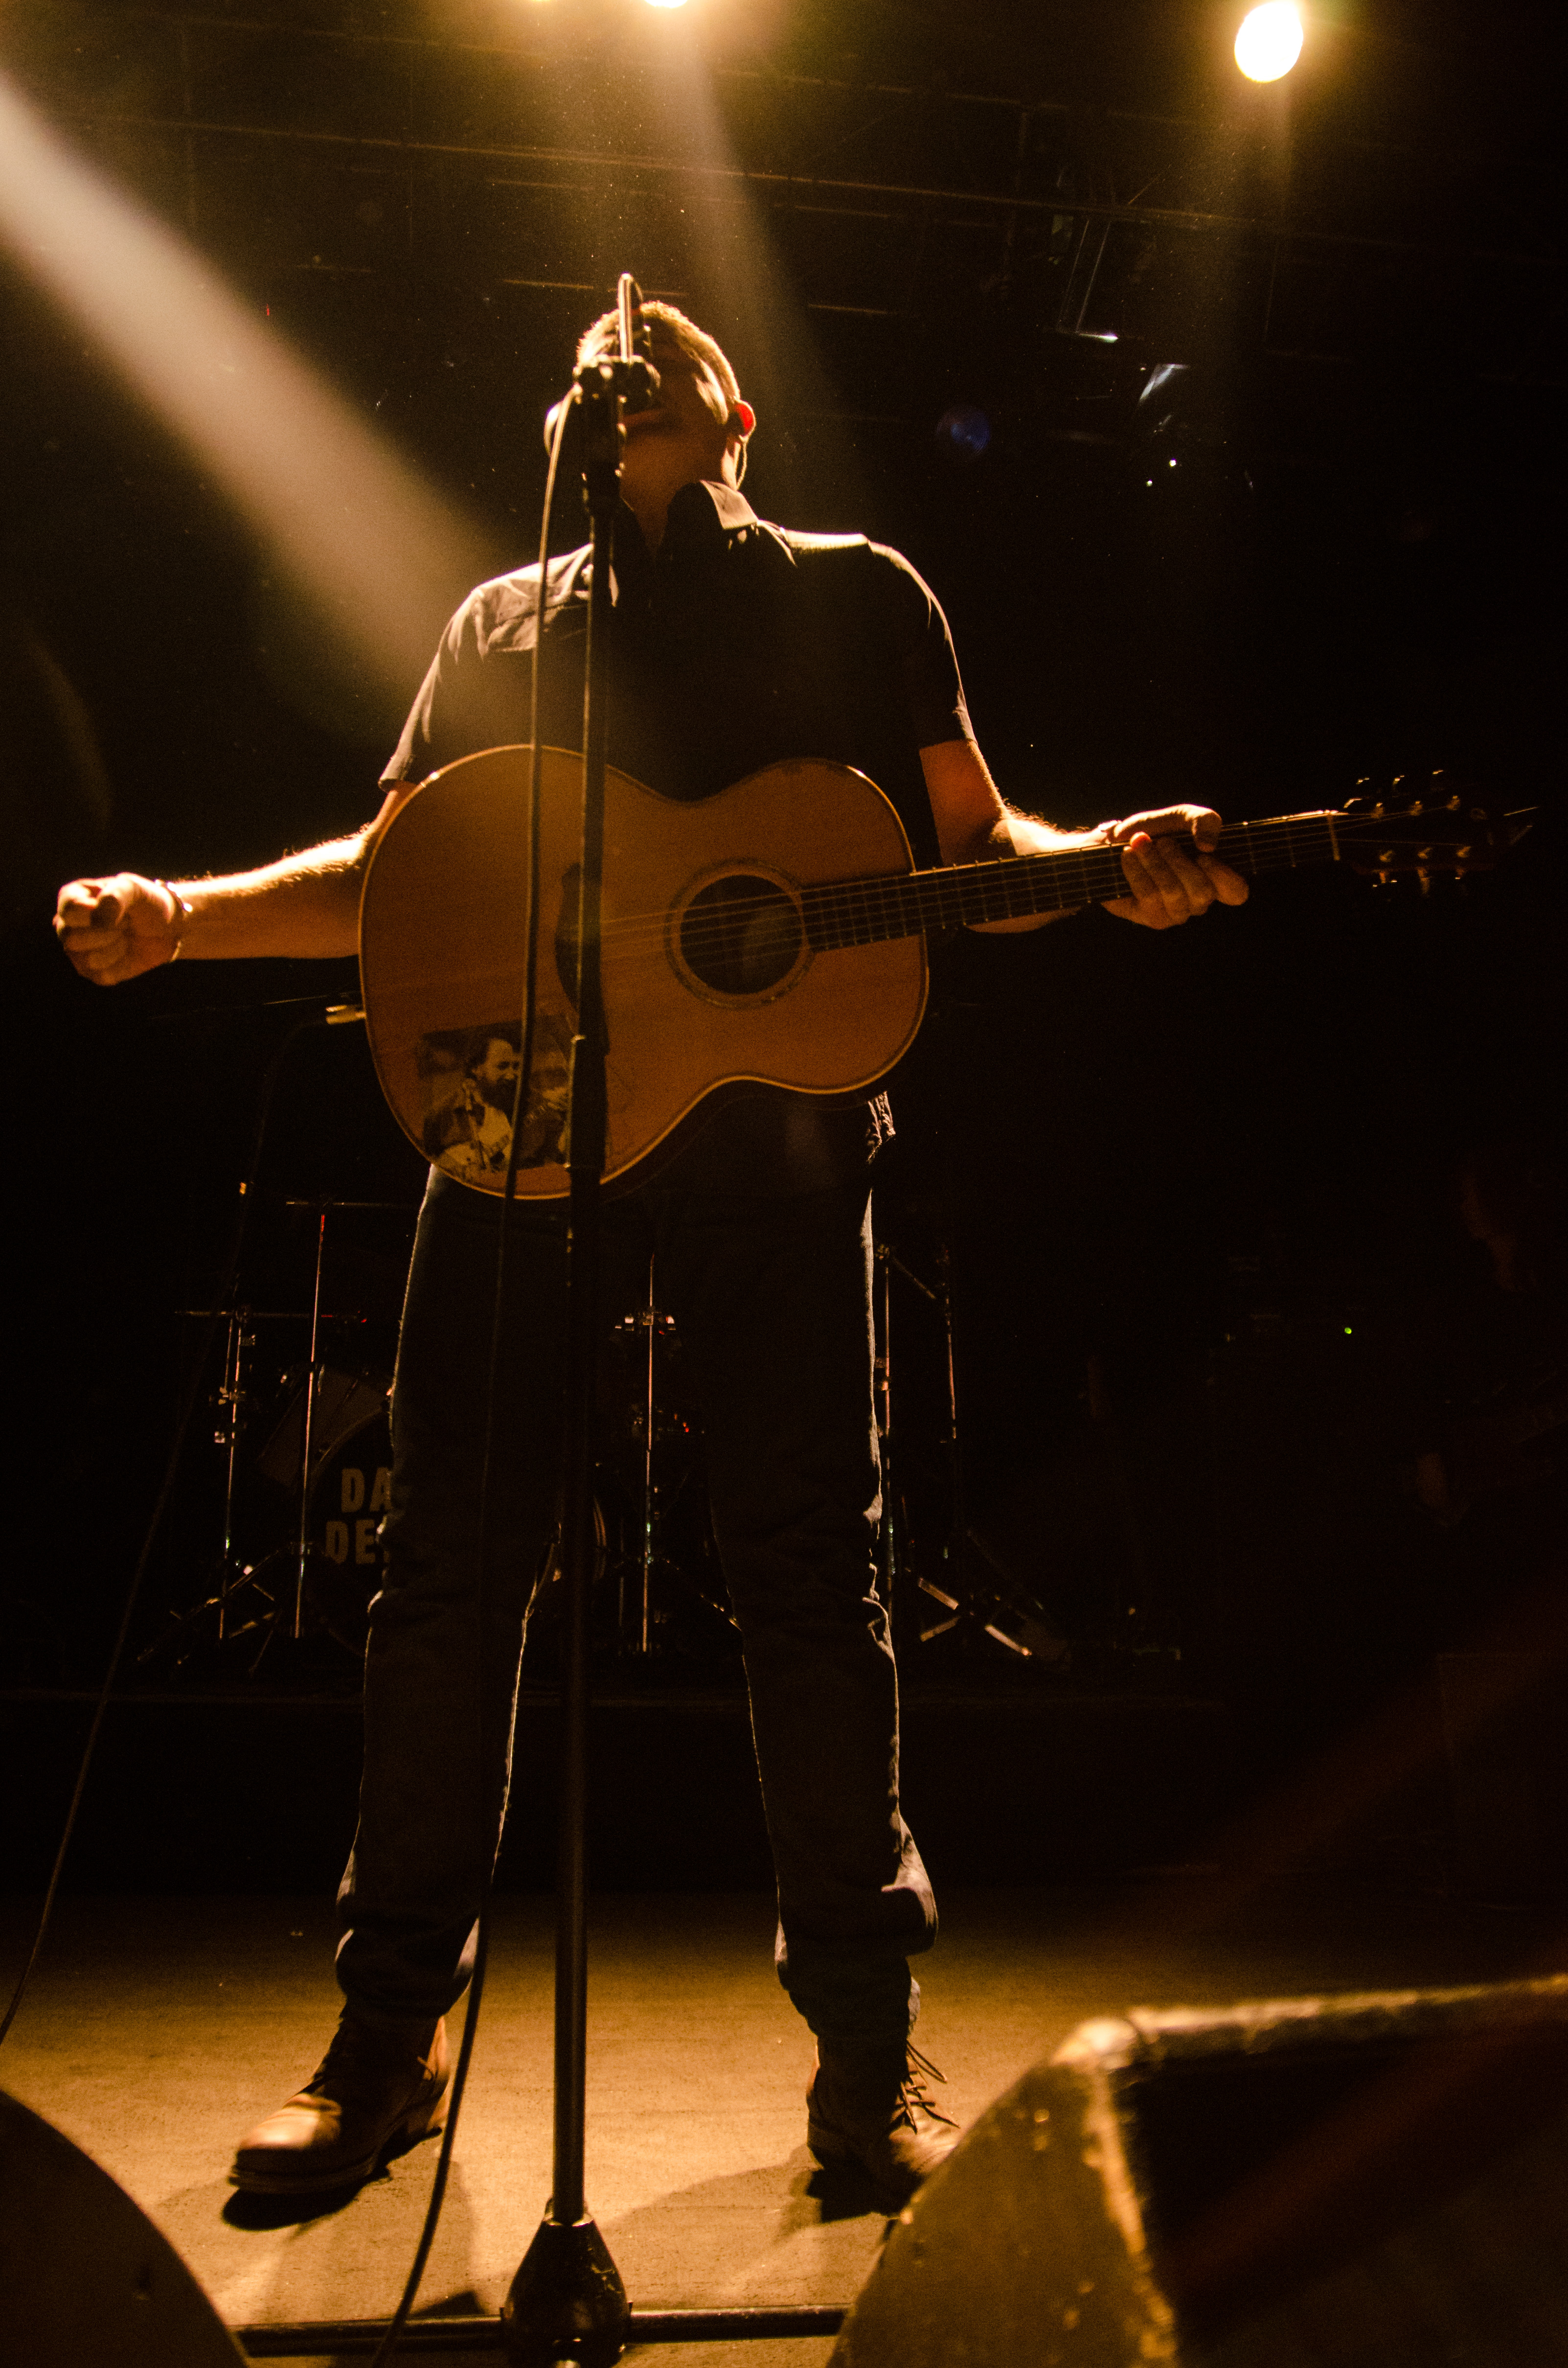 damien-dempsey-at-vicar-street-by-sean-smyth-19-12-15-3-of-34